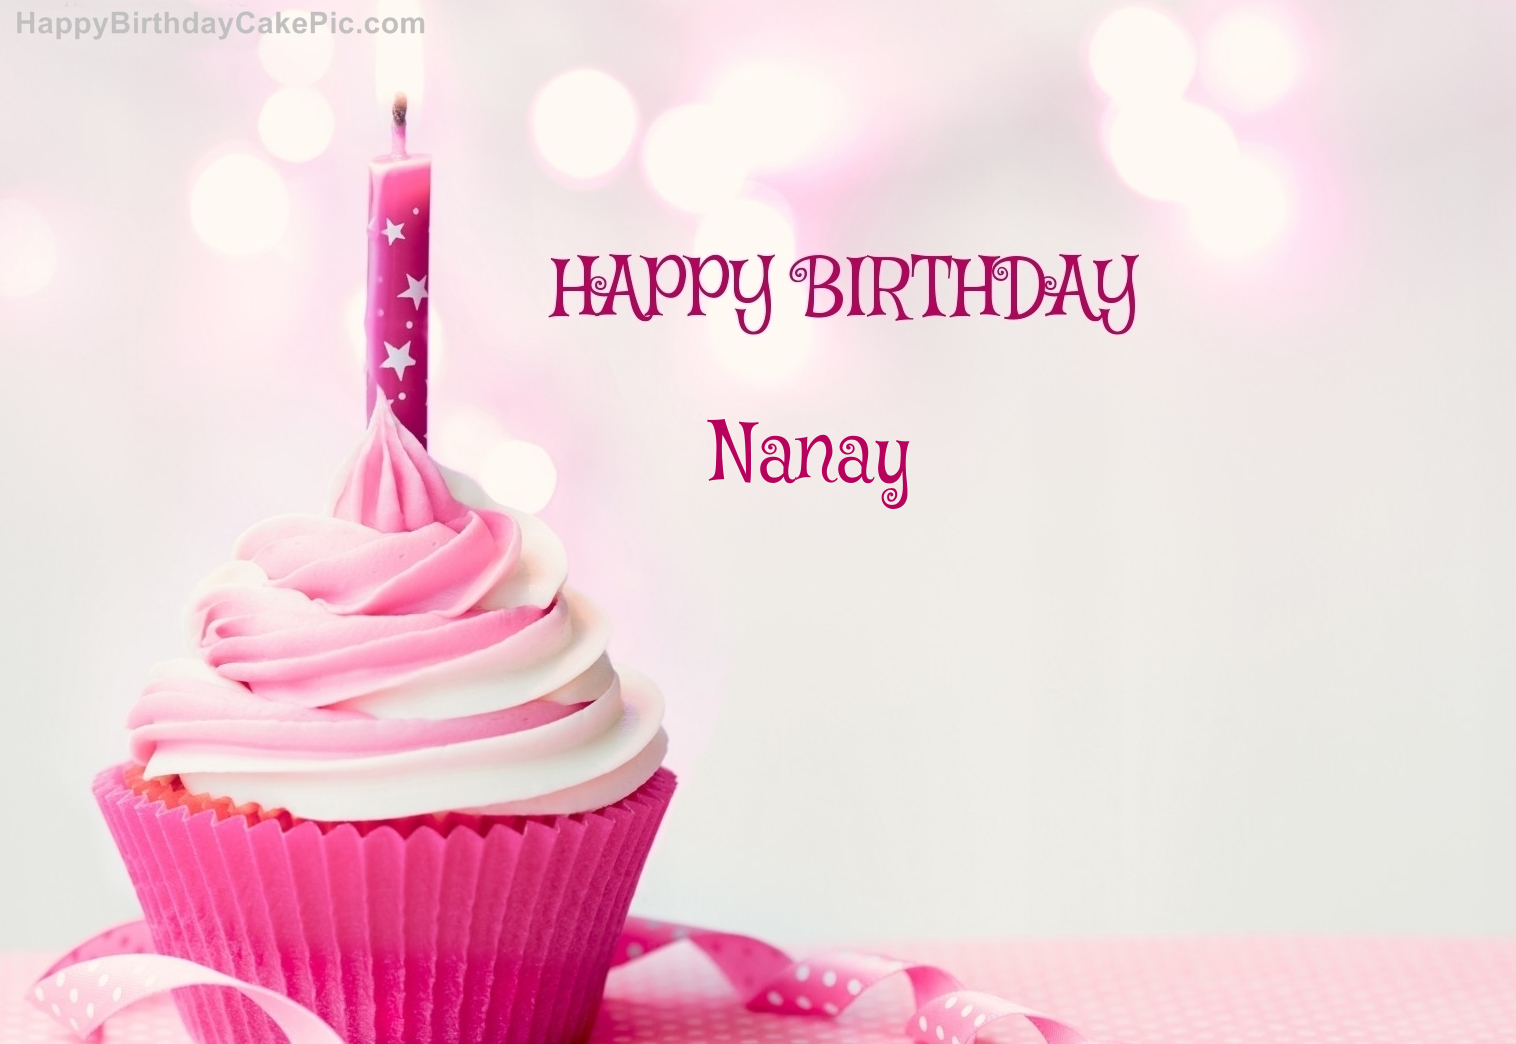 Happy Birthday Cupcake Candle Pink Cake For Nanay